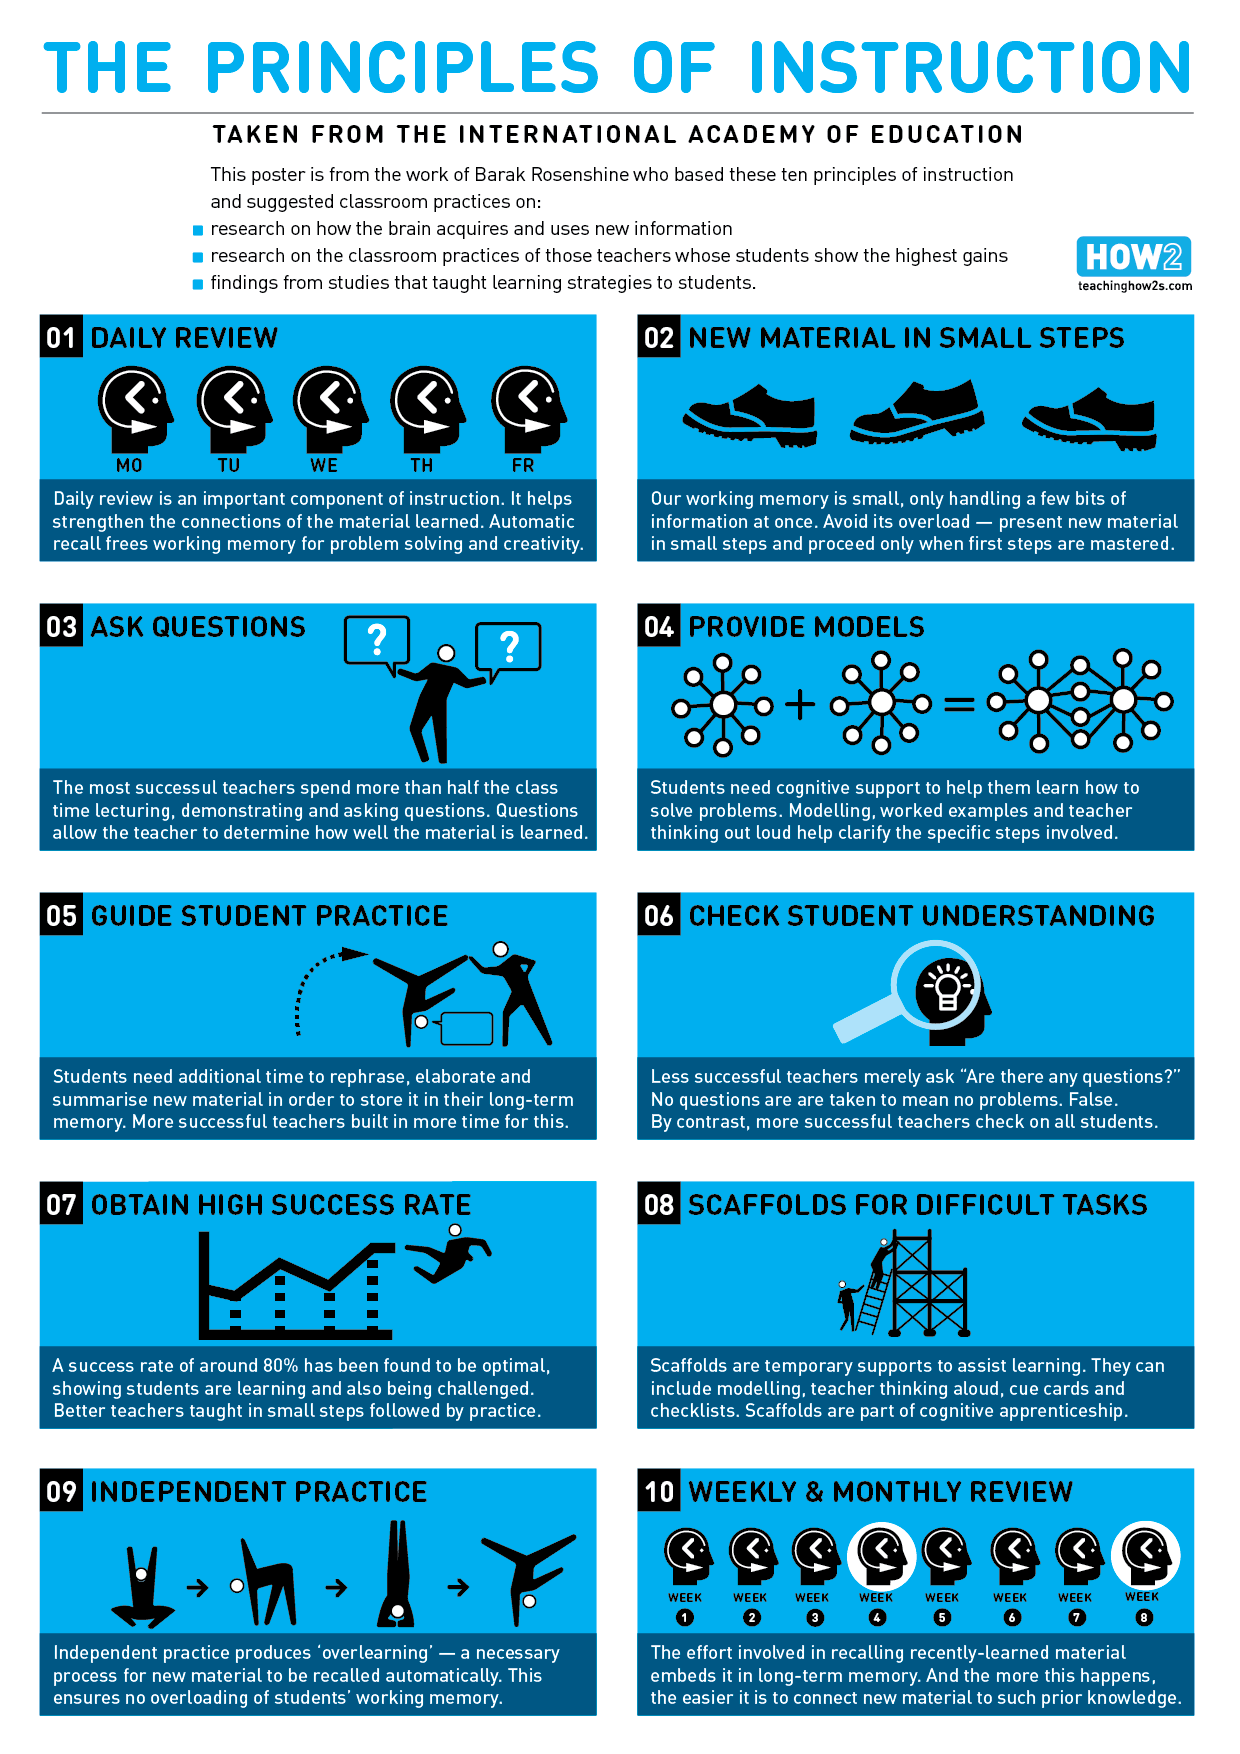 University Classroom Design Principles To Facilitate Learning ~ The principles of instruction infographic e learning